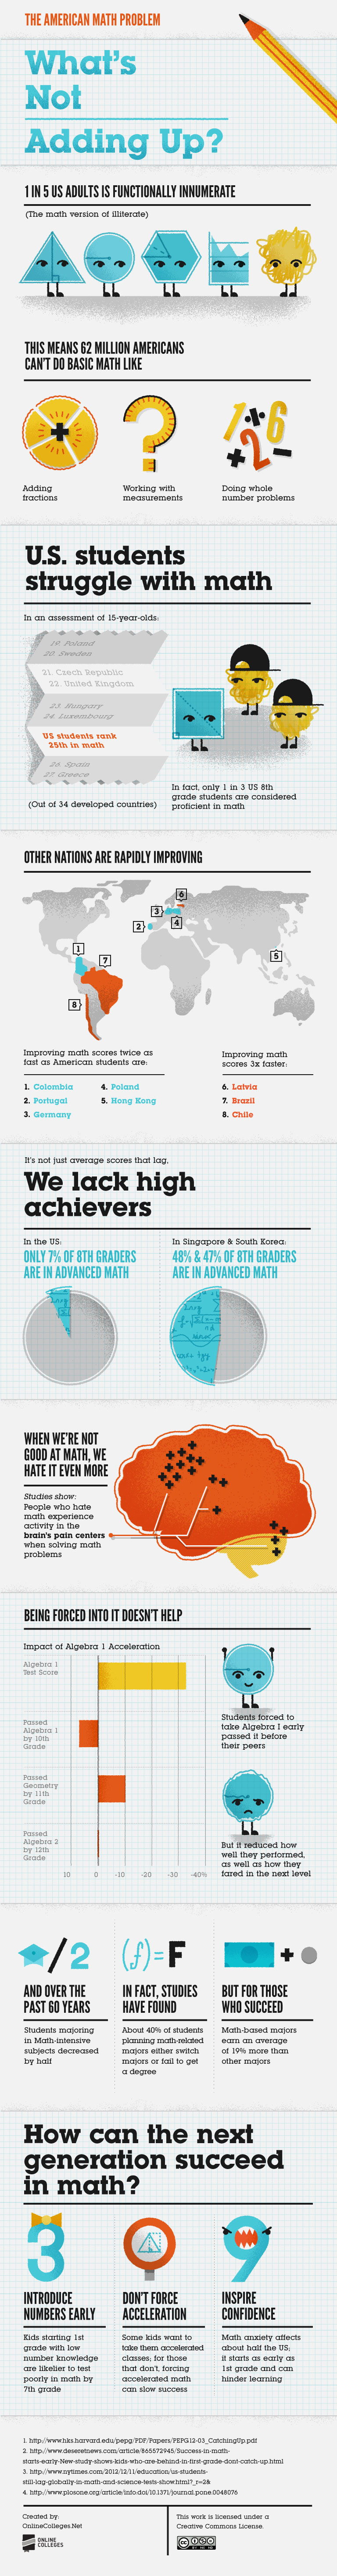 American Math Infographic